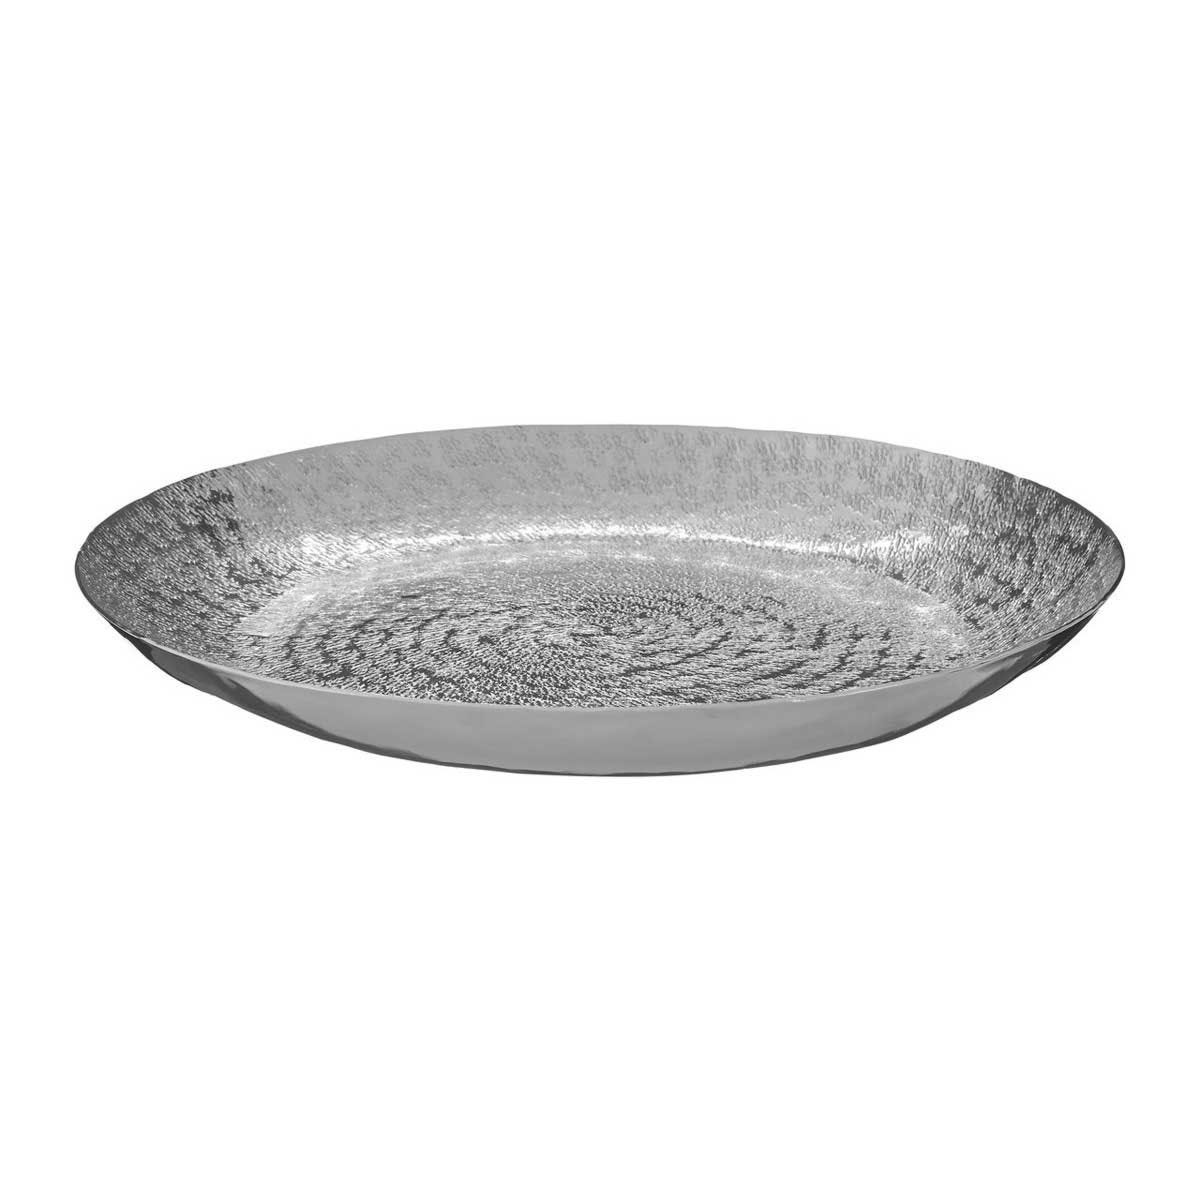 Premier Housewares Safia Large Decorative Plate